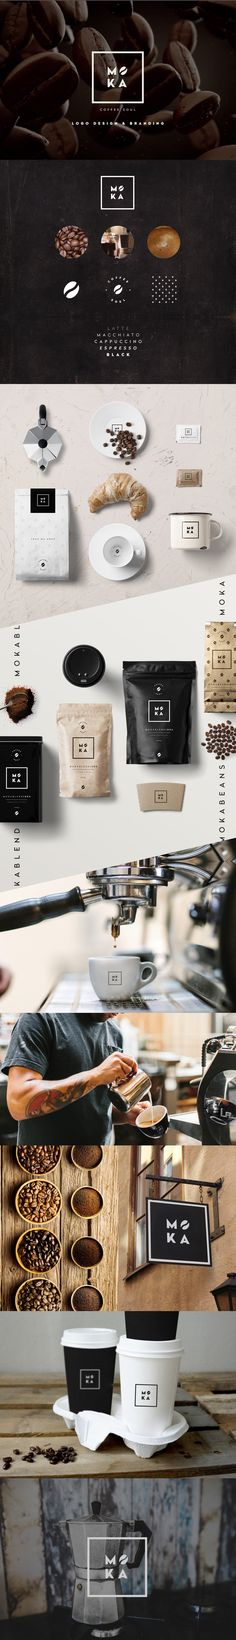 Concept for a Coffee brand.